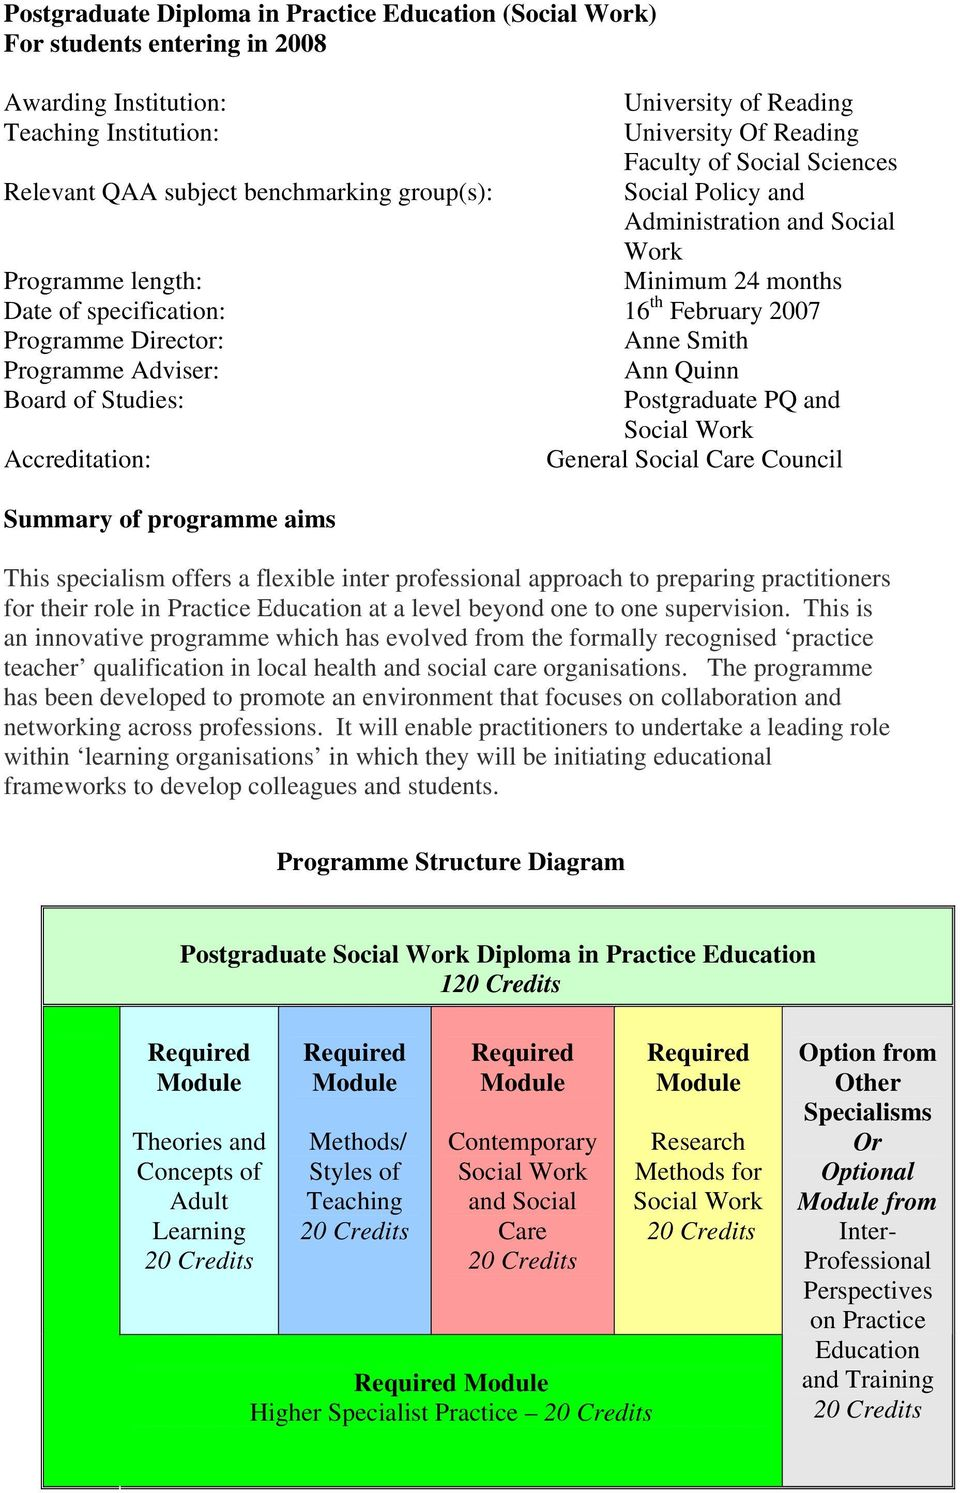 Programme Adviser: Ann Quinn Board of Studies: Postgraduate PQ and Social Work Accreditation: General Social Care Council Summary of programme aims This specialism offers a flexible inter